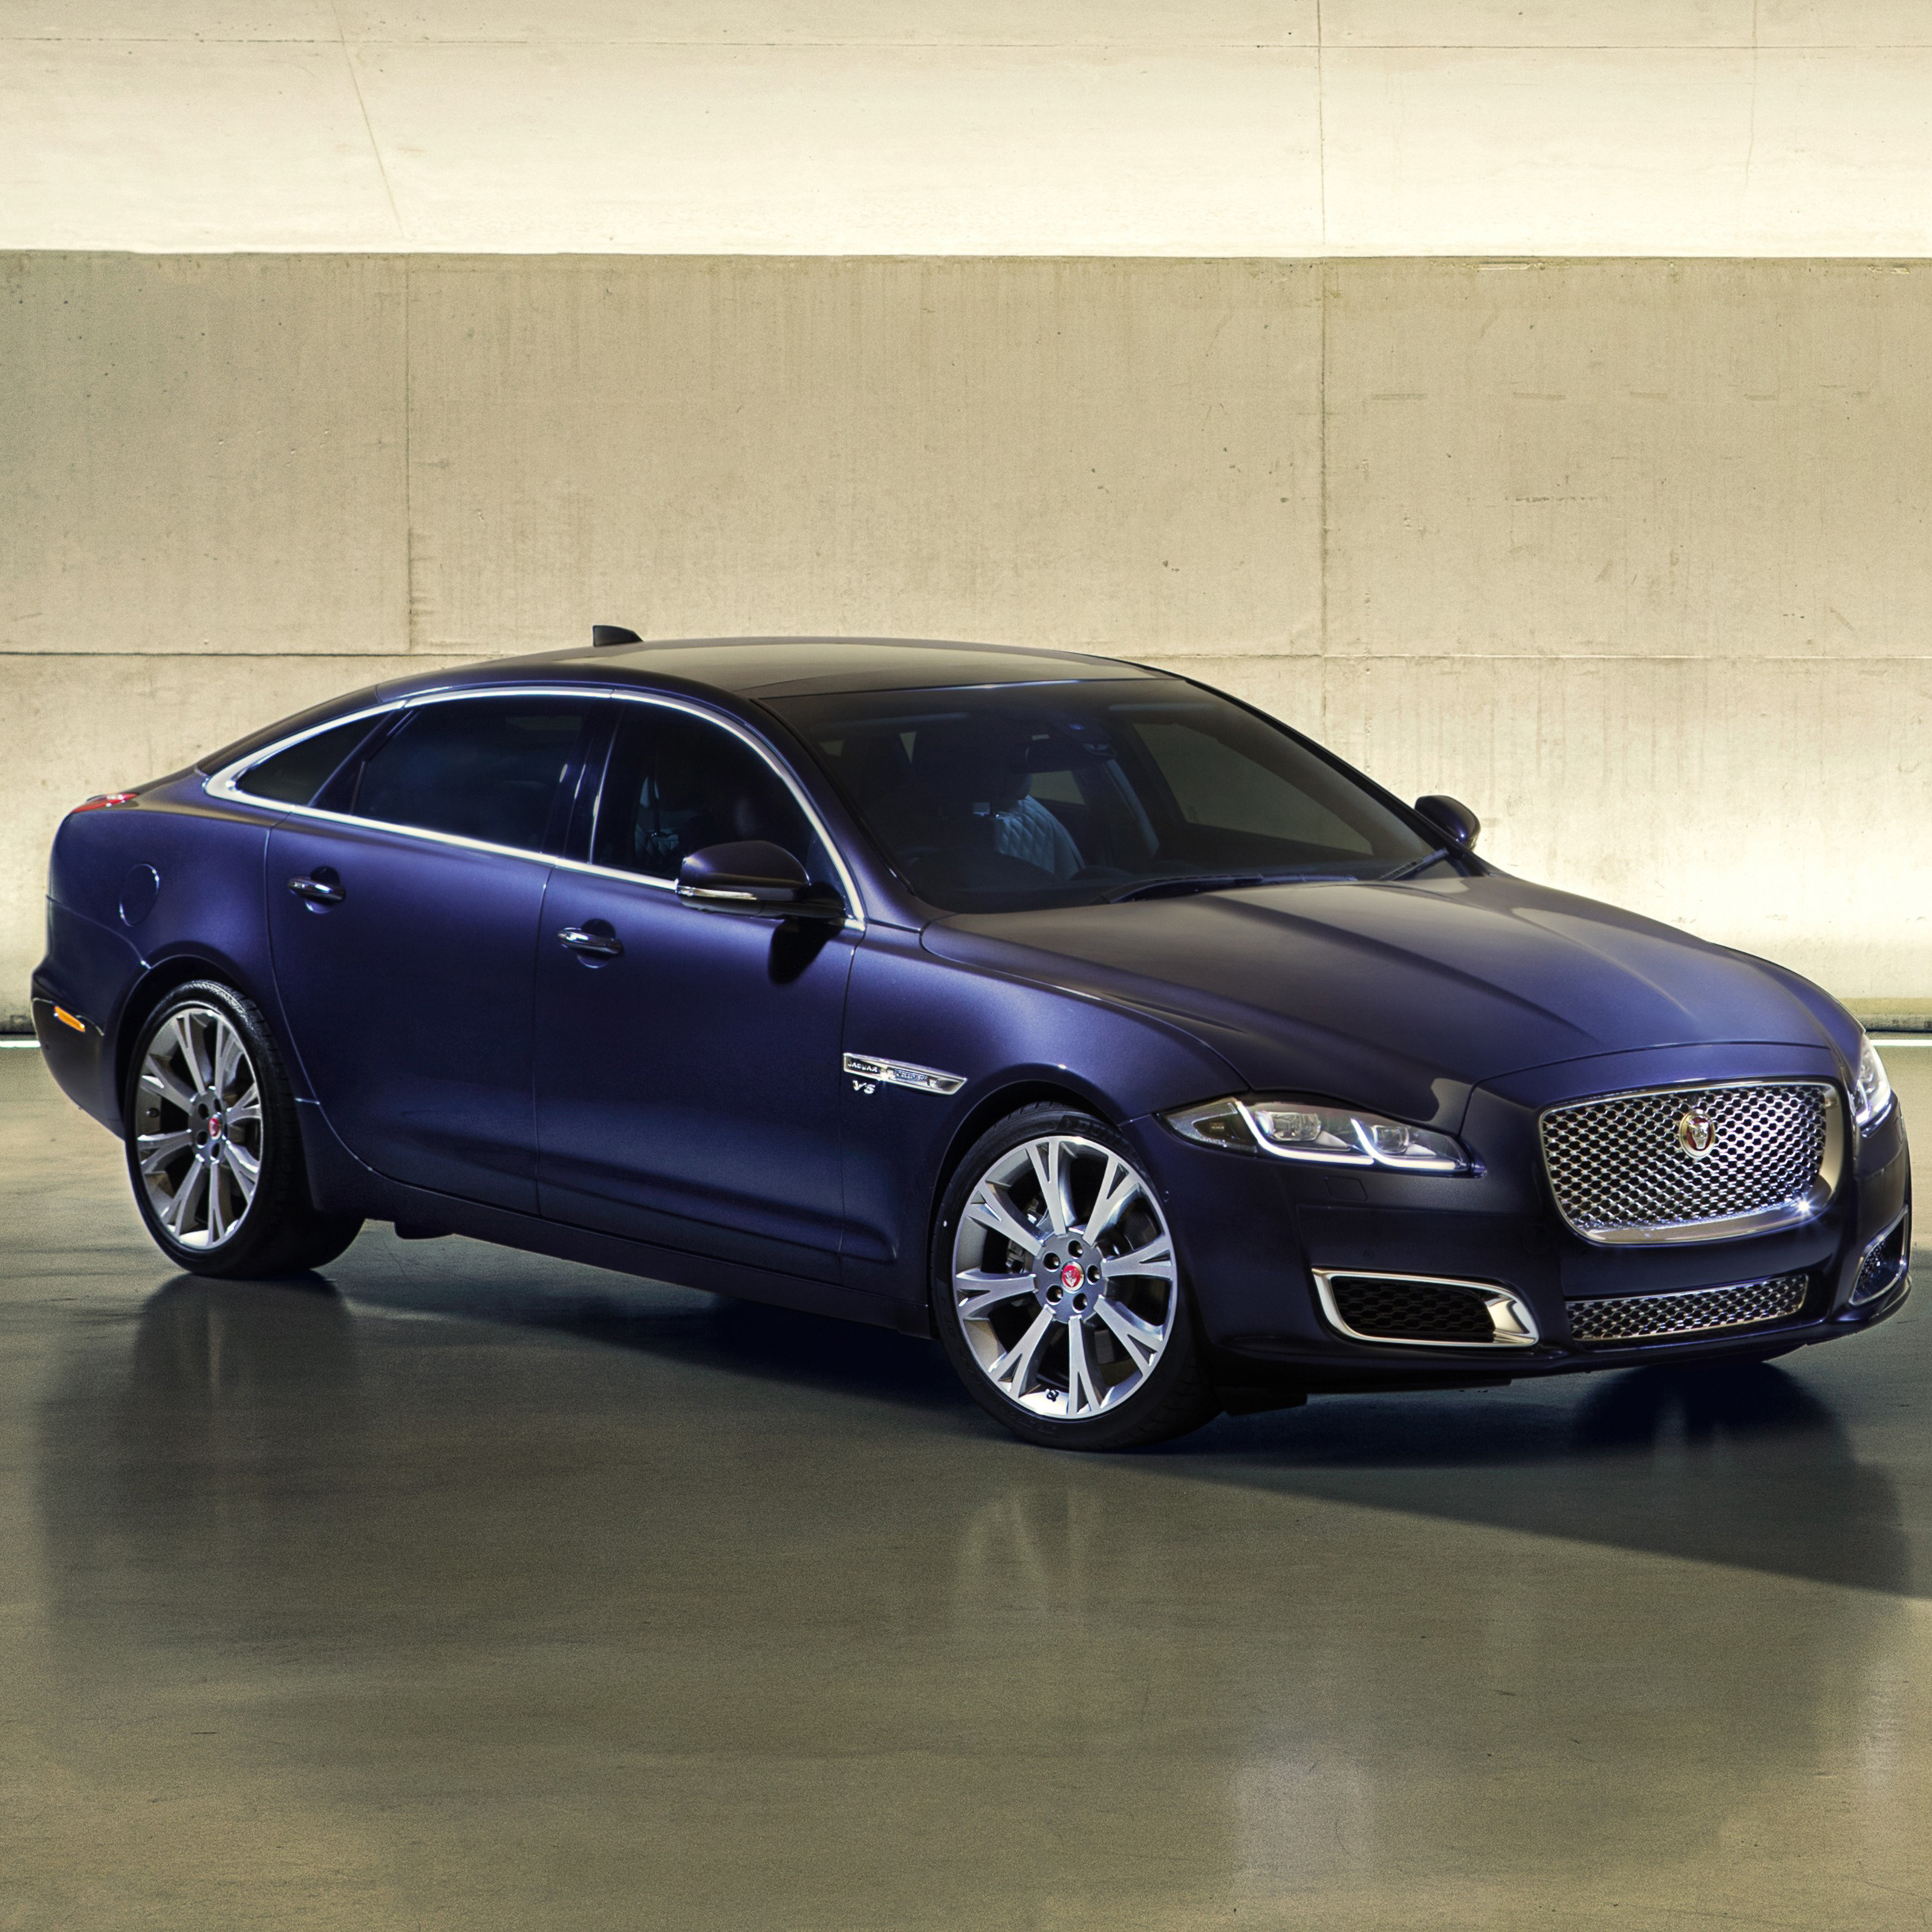 Jaguar XJ Resets The Standard For Luxury And Design